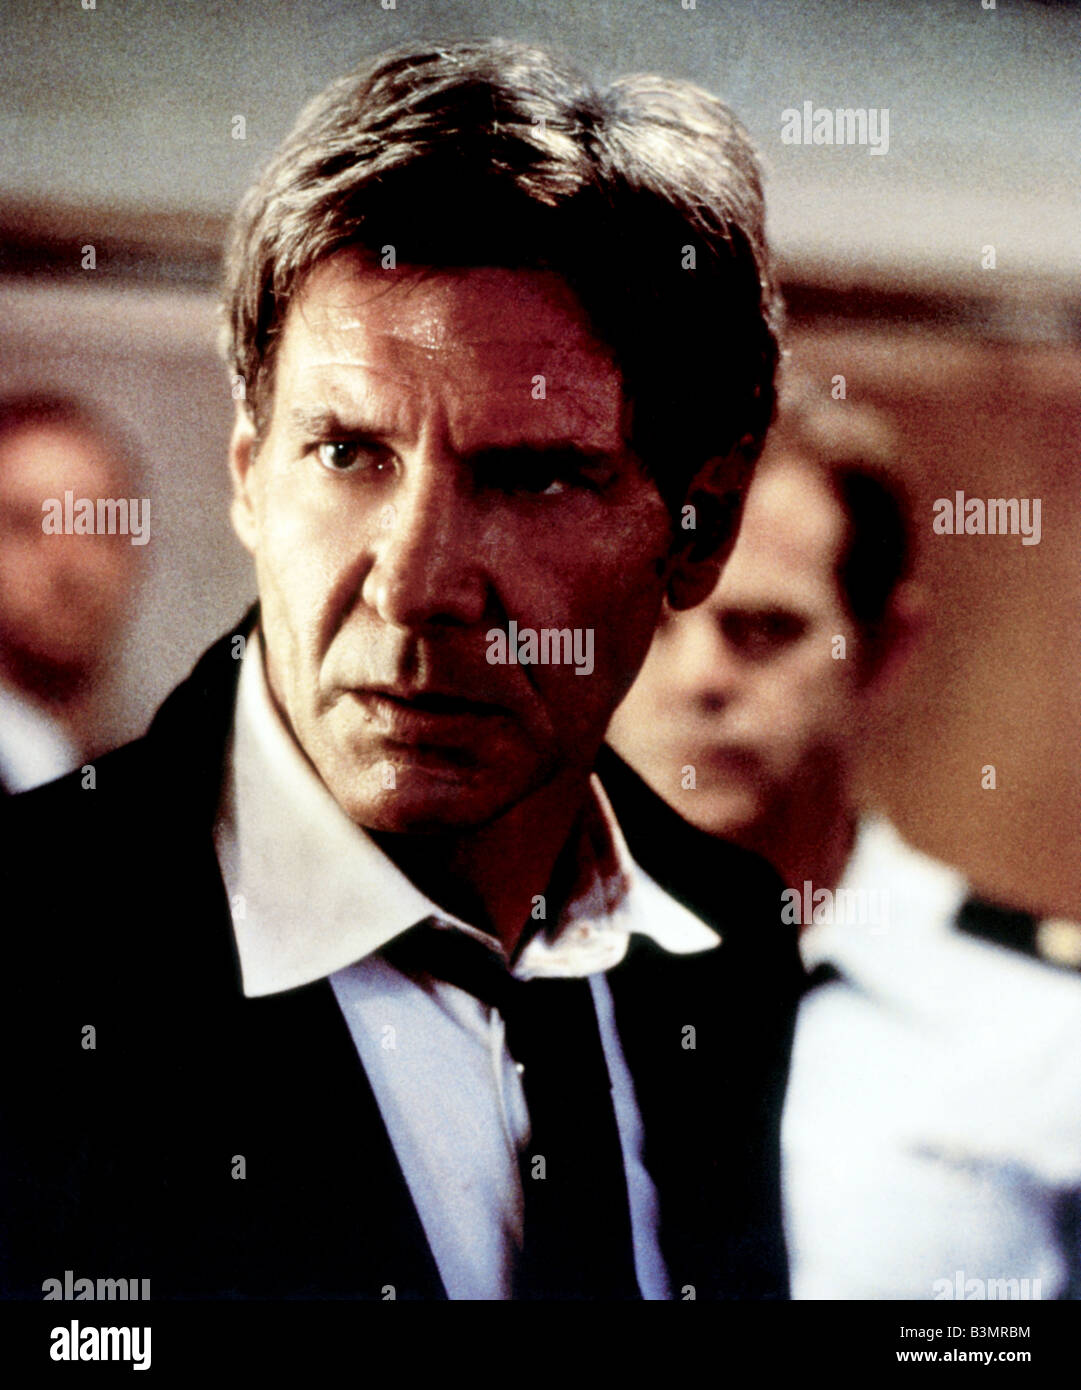 AIR FORCE ONE 1997 Columbia film with Harrison Ford - Stock Image